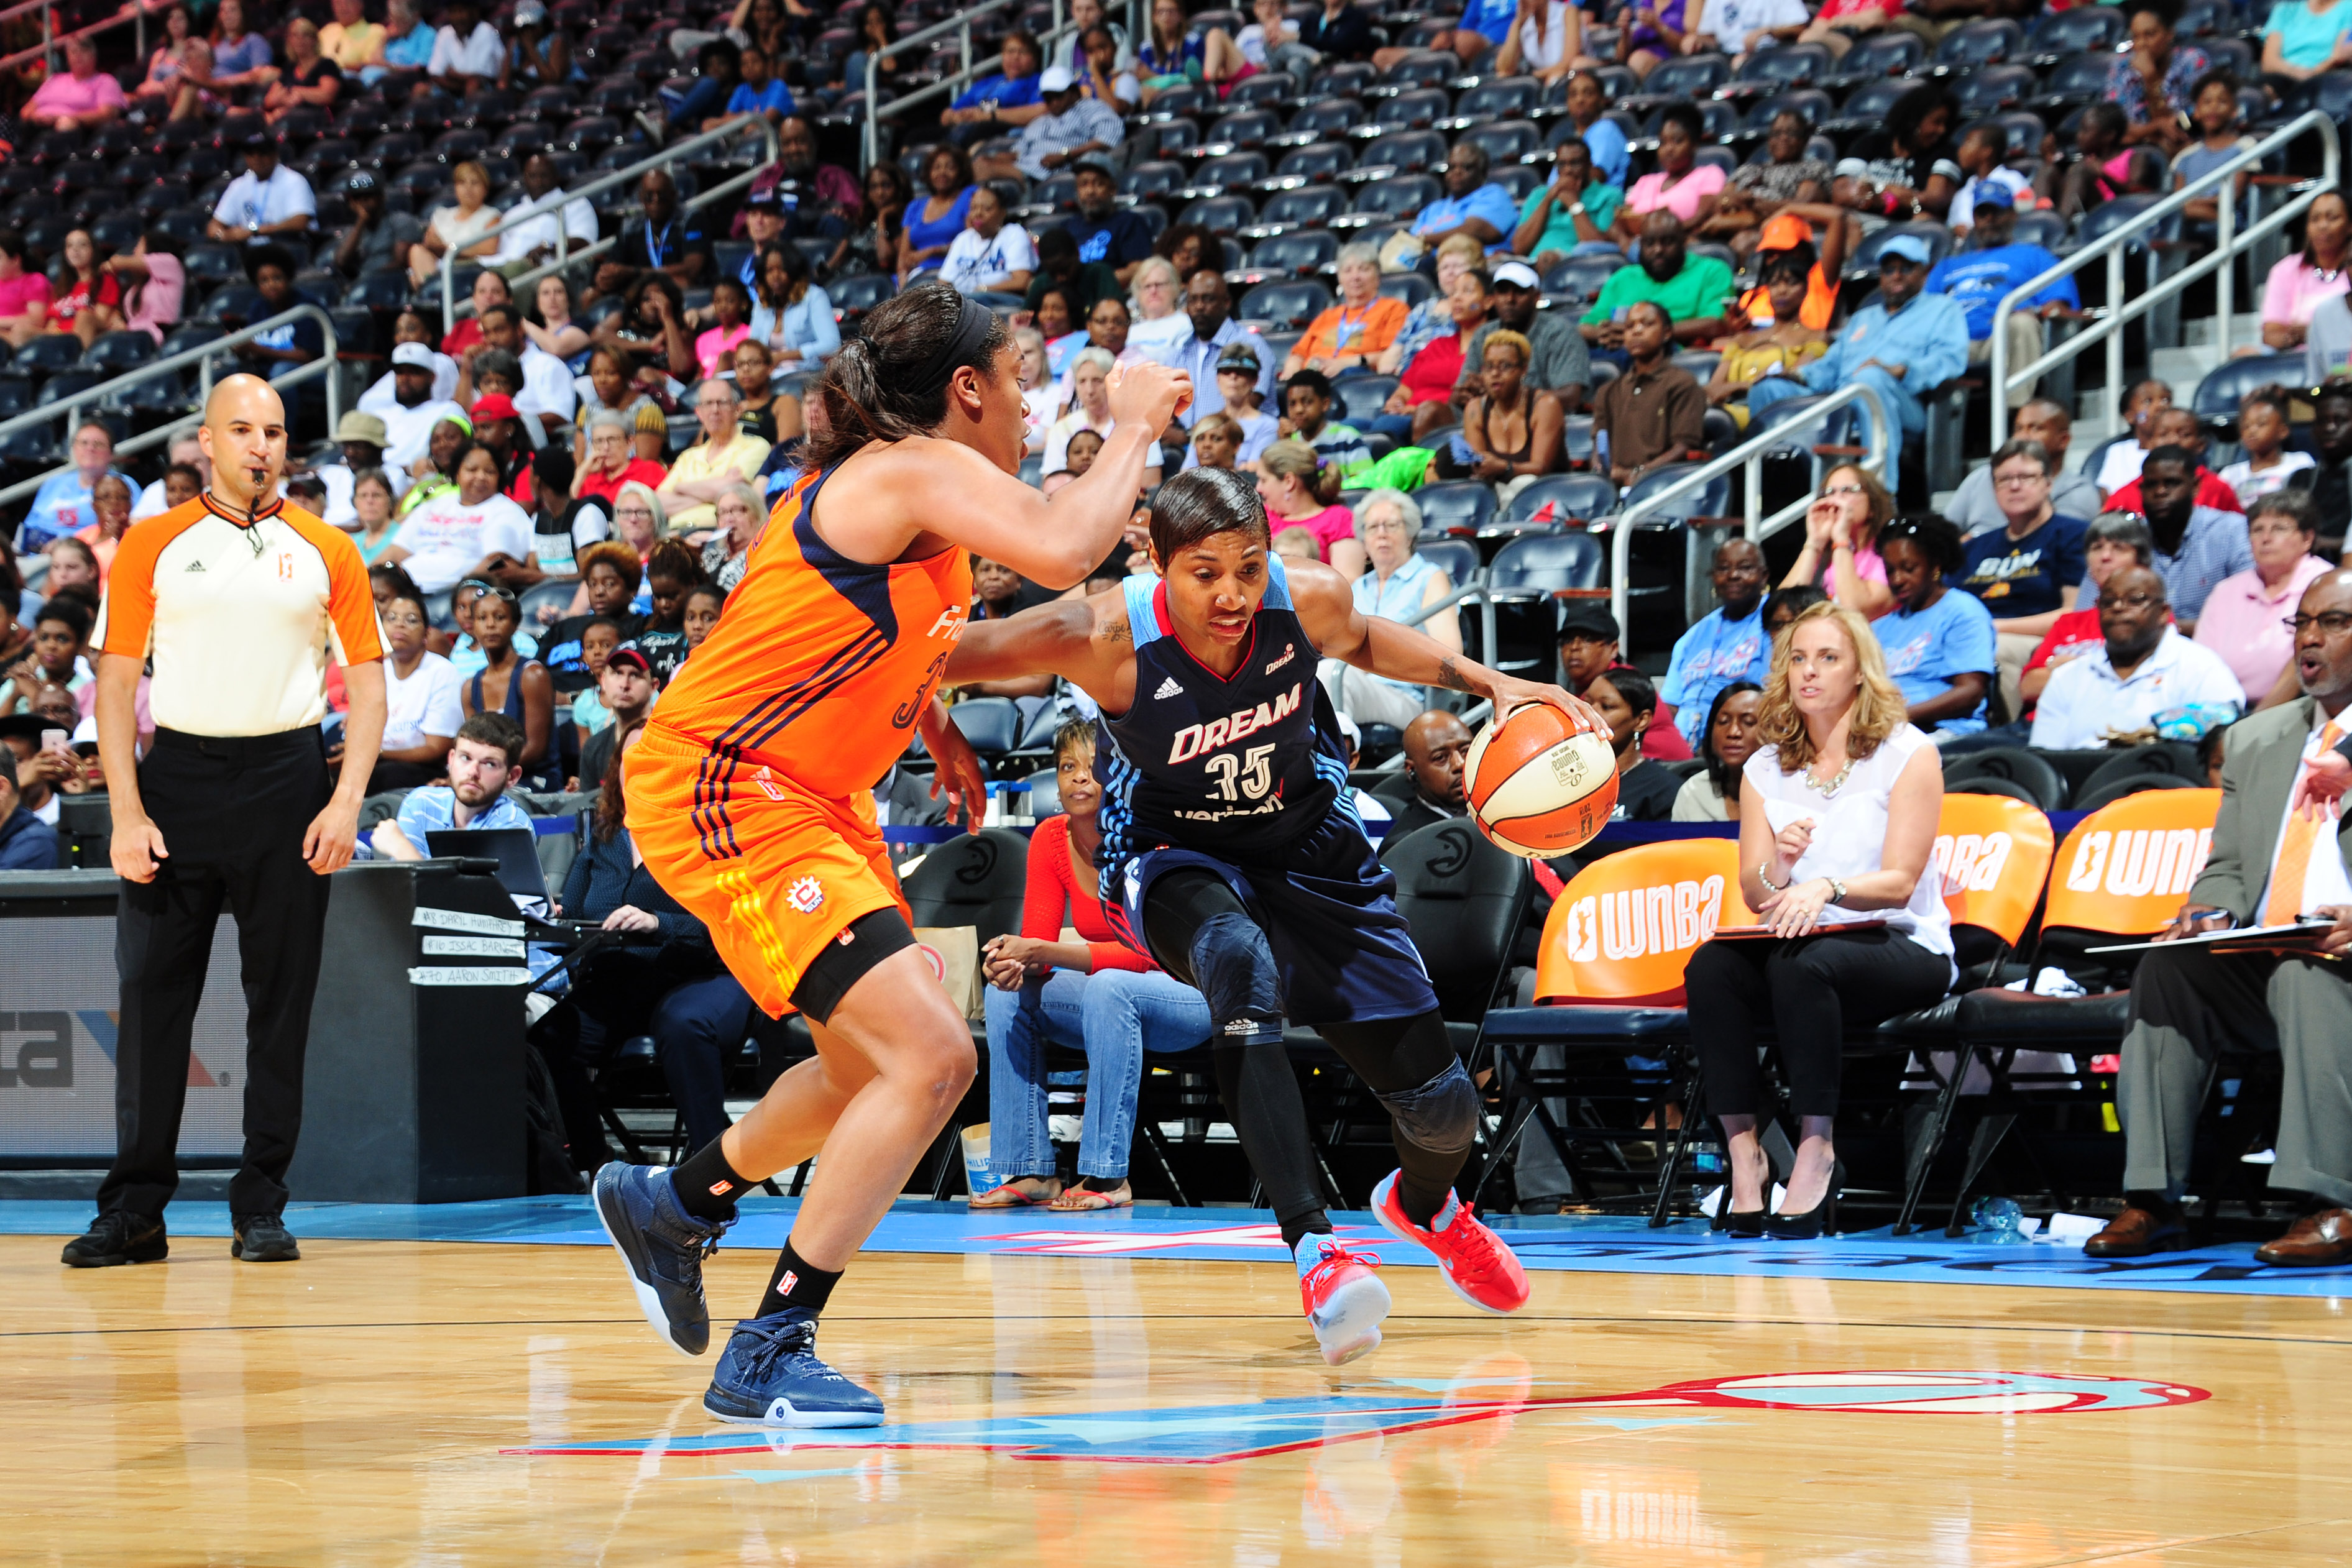 ATLANTA, GA - JUNE 12: Angel McCoughtry #35 of the Atlanta Dream moves the ball against the Connecticut Sun during the game on June 12, 2016 at Philips Arena in Atlanta, Georgia. NOTE TO USER: User expressly acknowledges and agrees that, by downloading and or using this Photograph, user is consenting to the terms and conditions of the Getty Images License Agreement. Mandatory Copyright Notice: Copyright 2016 NBAE (Photo by Scott Cunningham/NBAE via Getty Images)